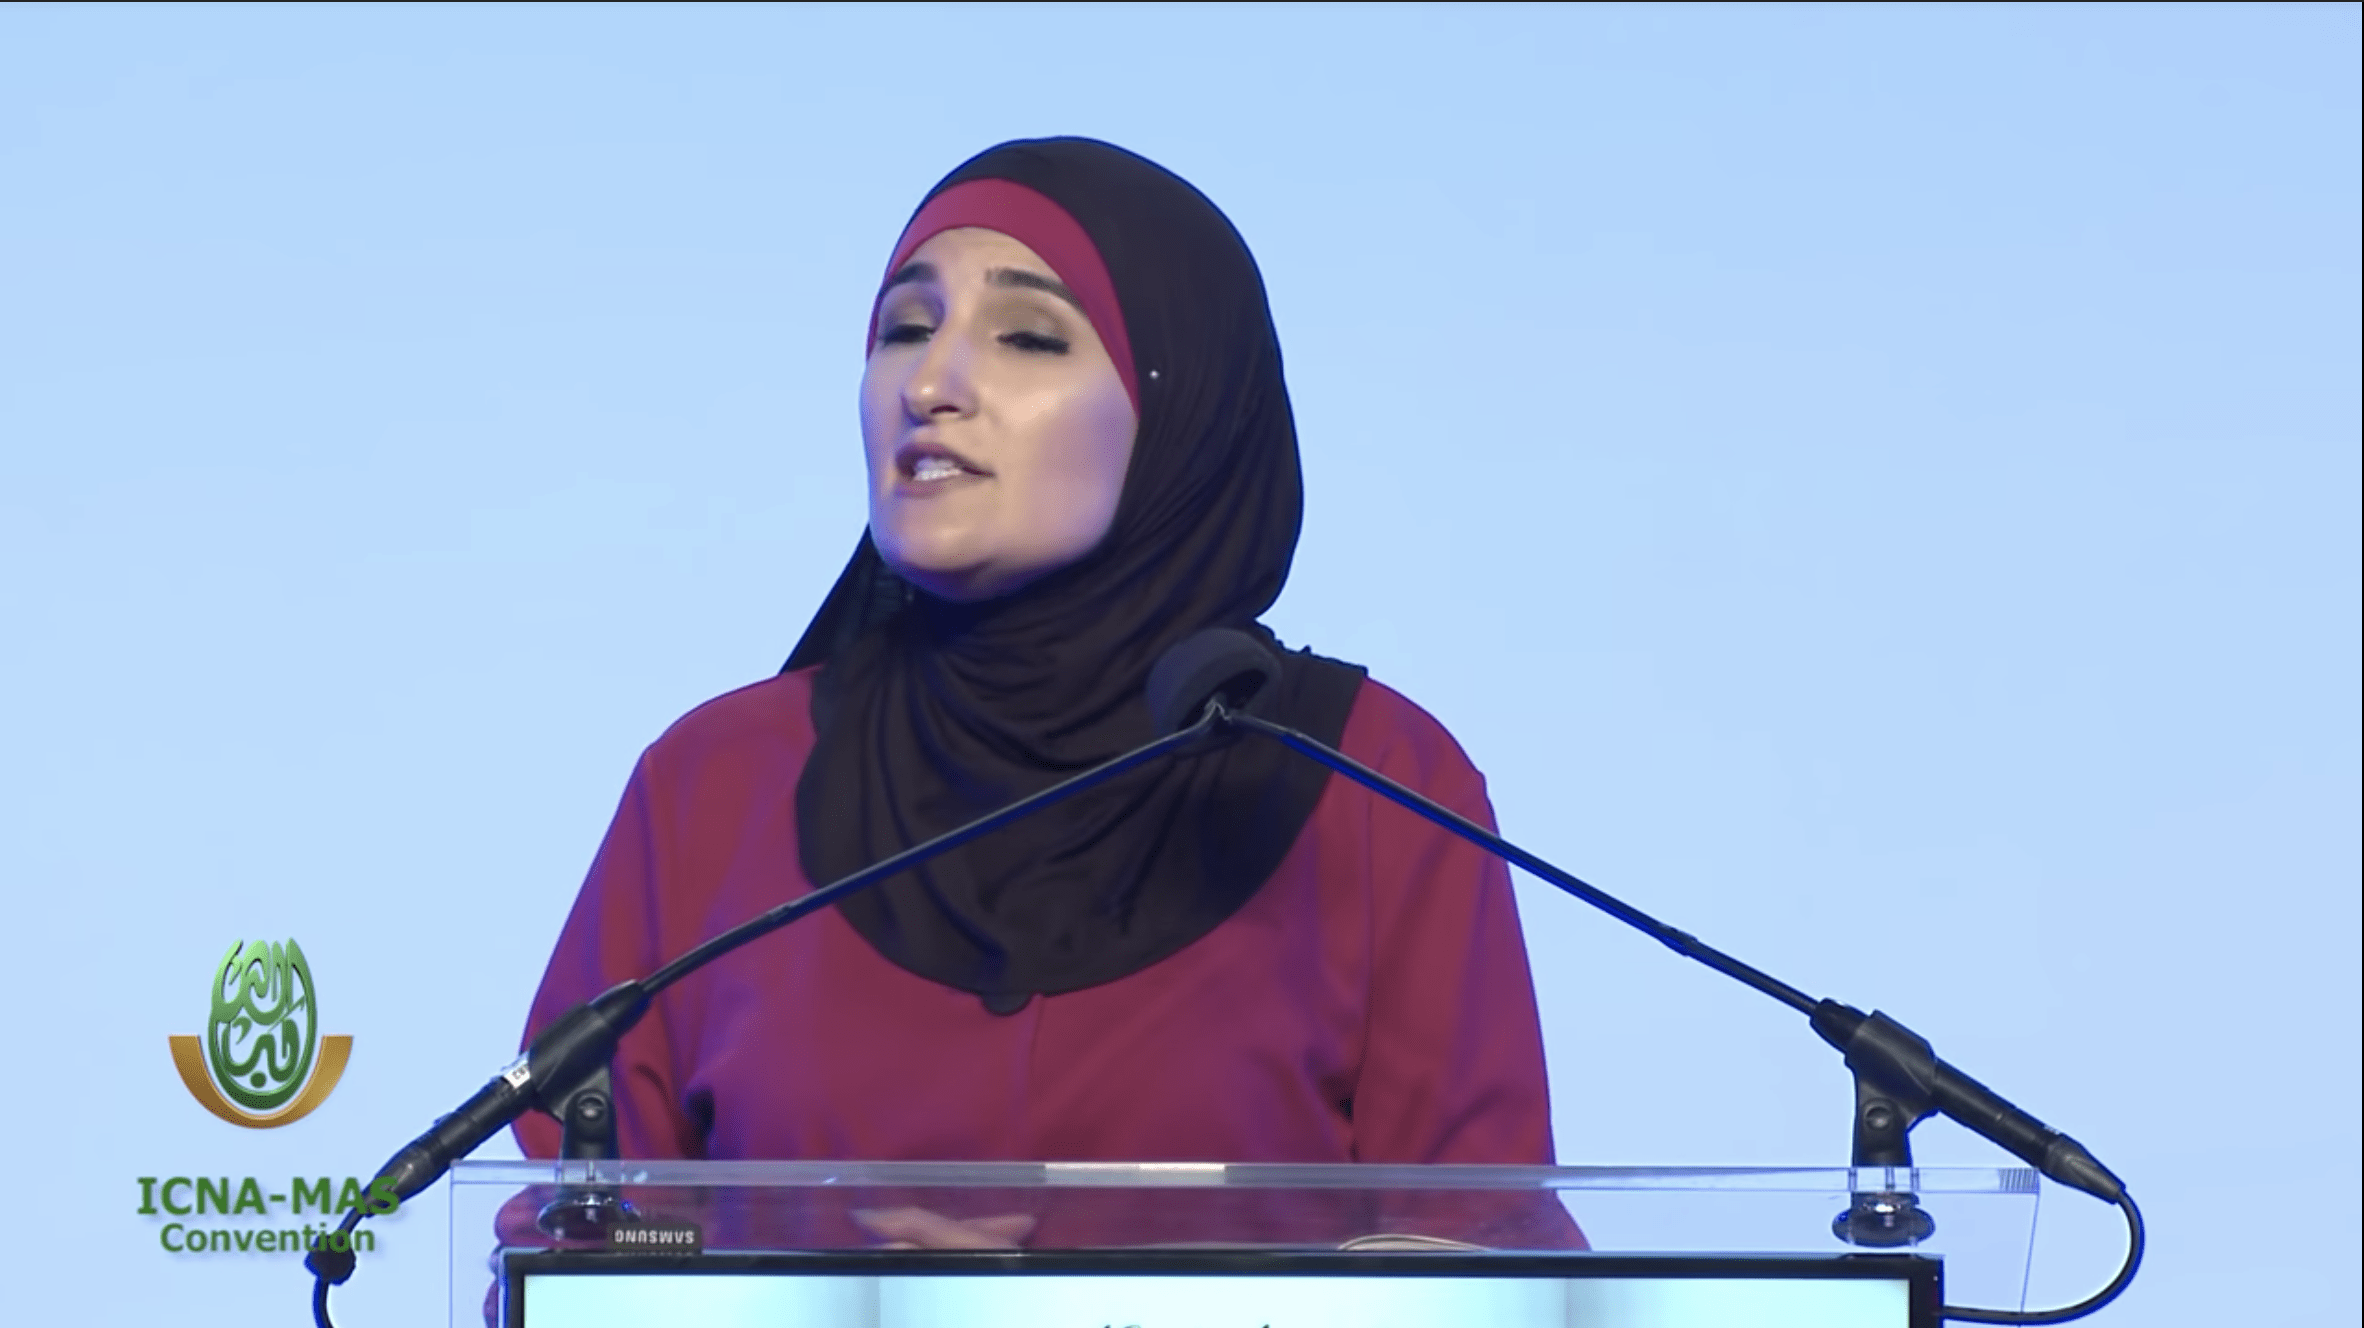 Linda Sarsour – If They don't Give You a Seat at the Table, Bring A Folding Chair